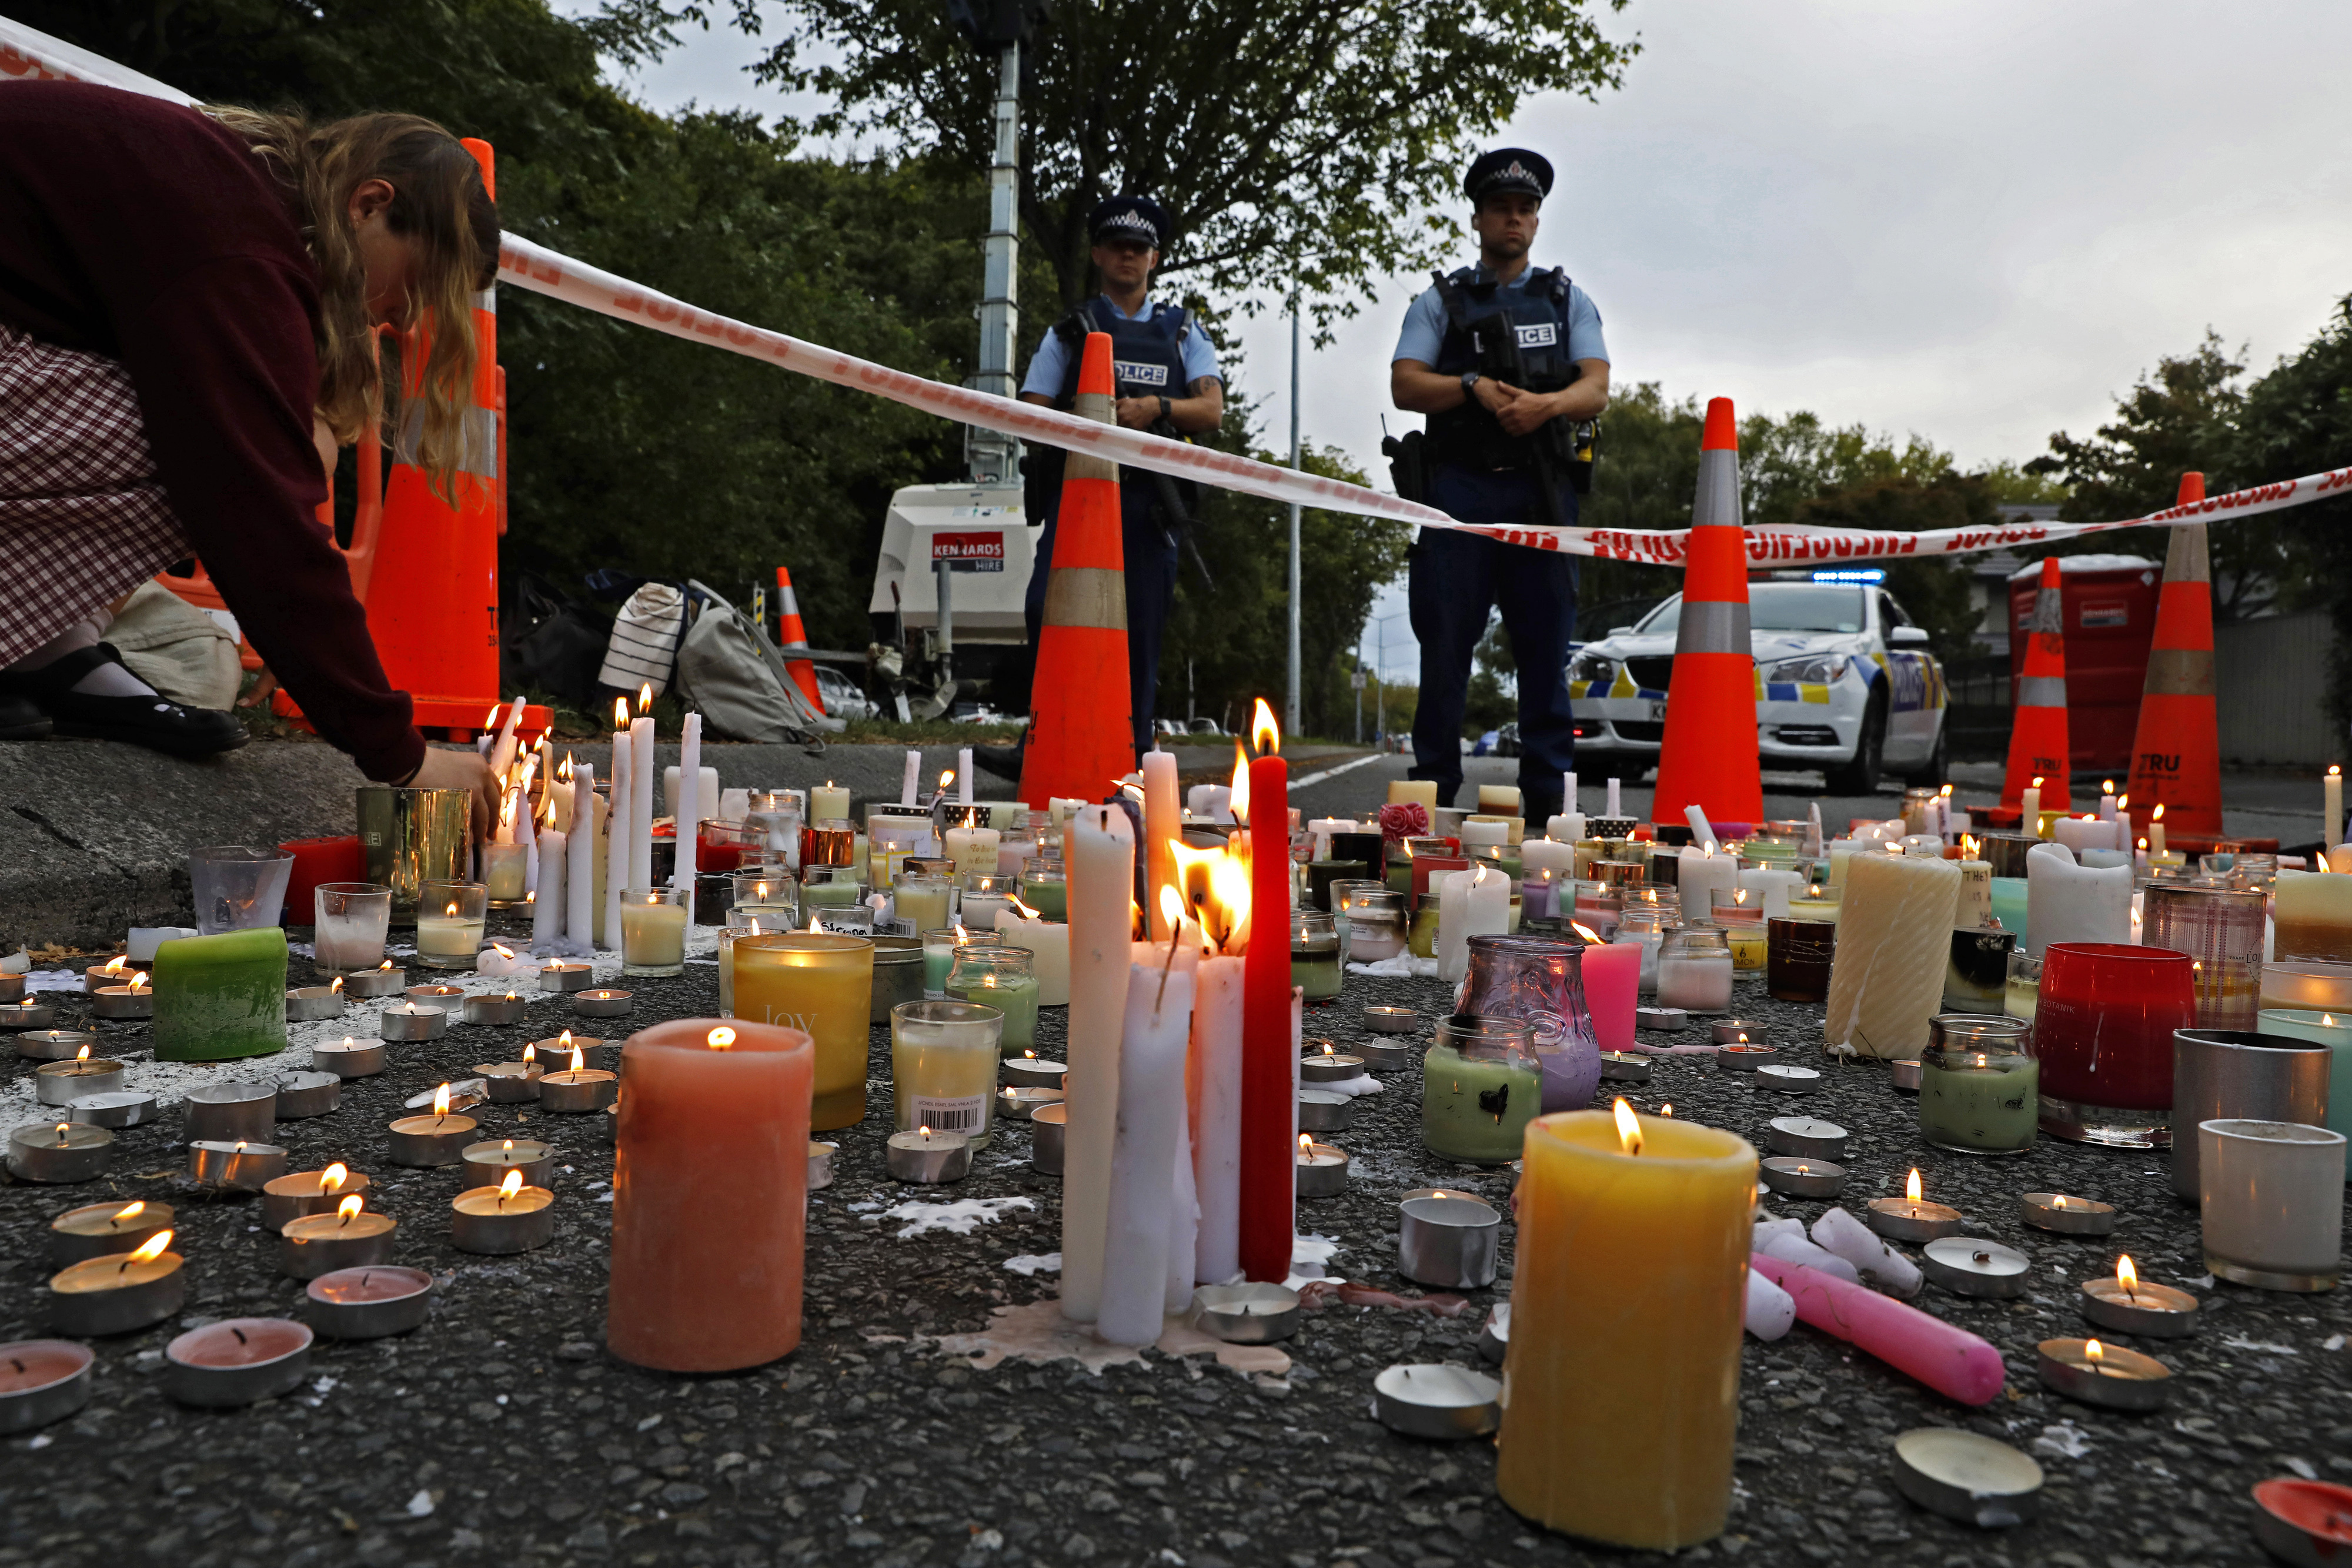 Christchurch Shooting Manifesto Claims Nz Mosque Attacks: Debate Over Free Speech, After New Zealand